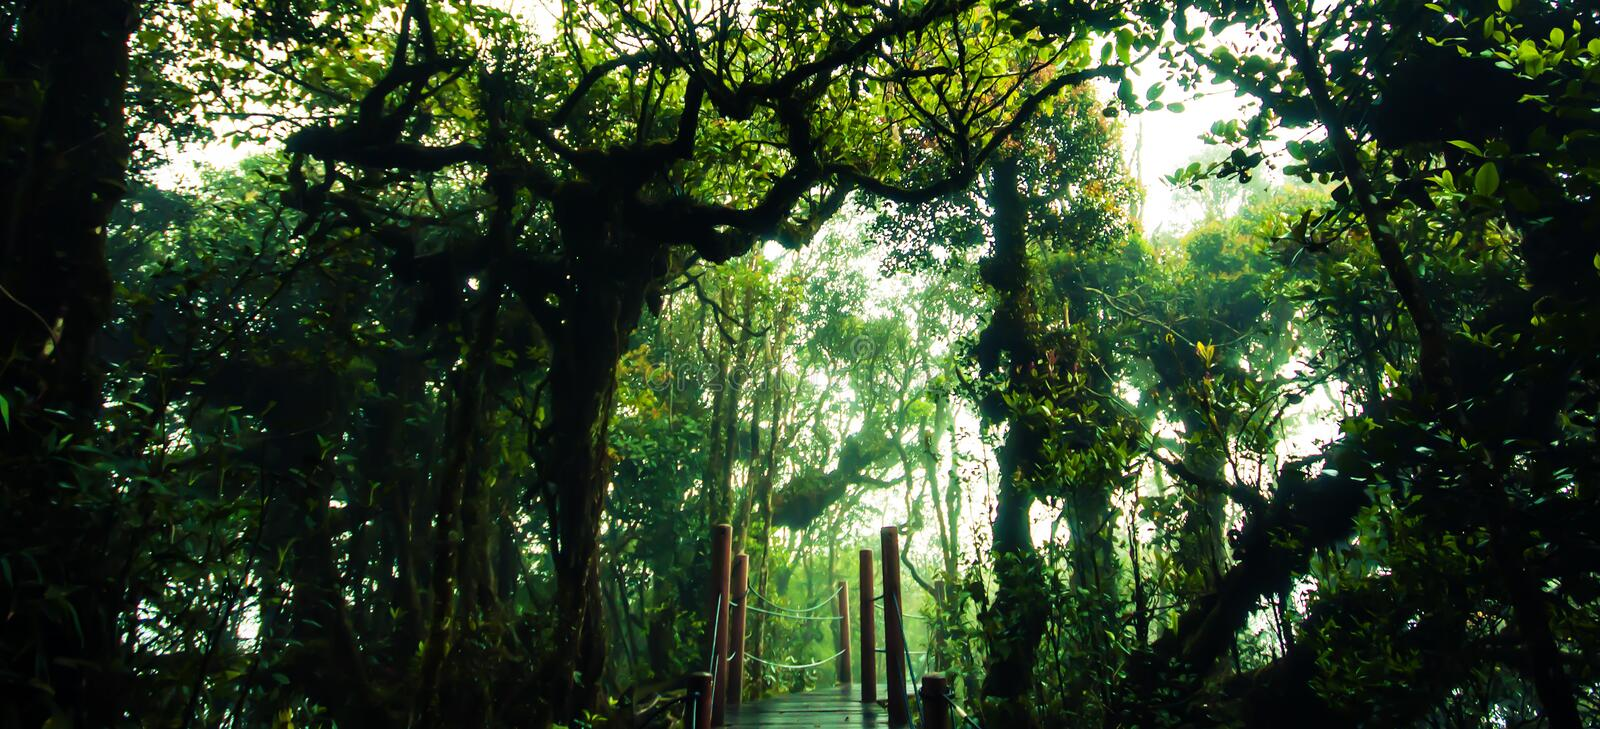 Amazing jungle trail with thick green trees and branches in Moss stock photography